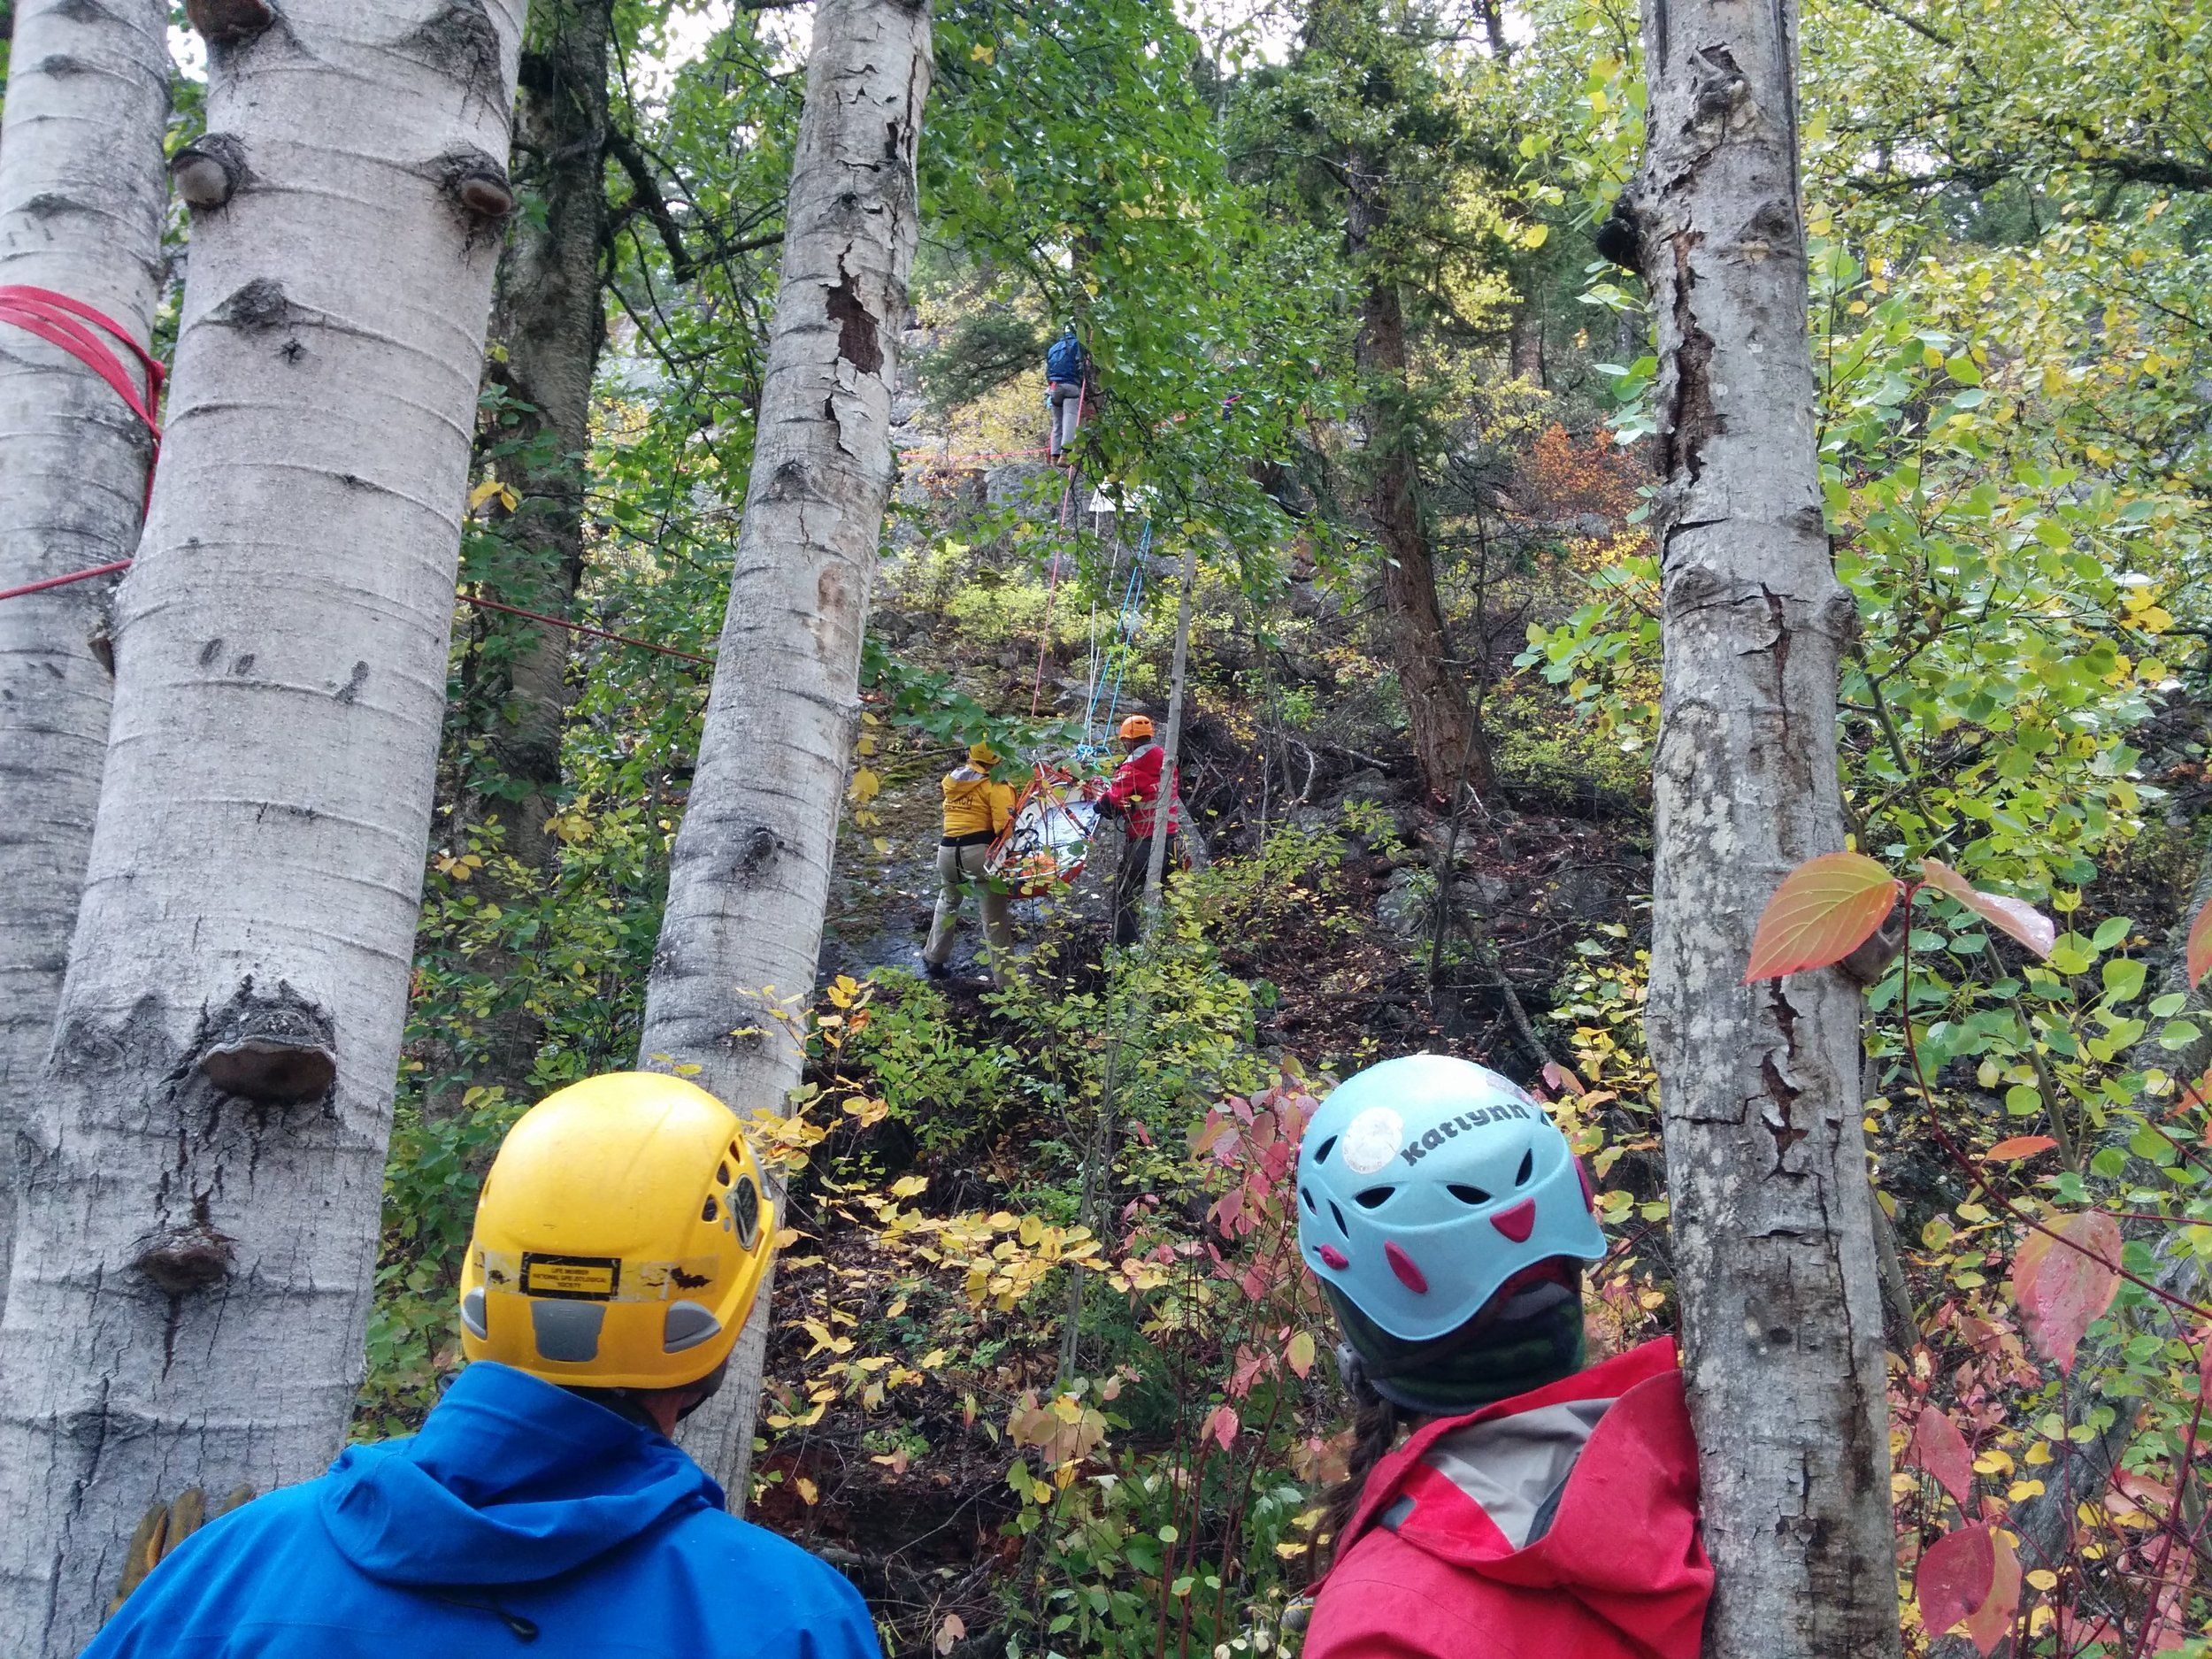 Raising rescuers and stretcher to top.